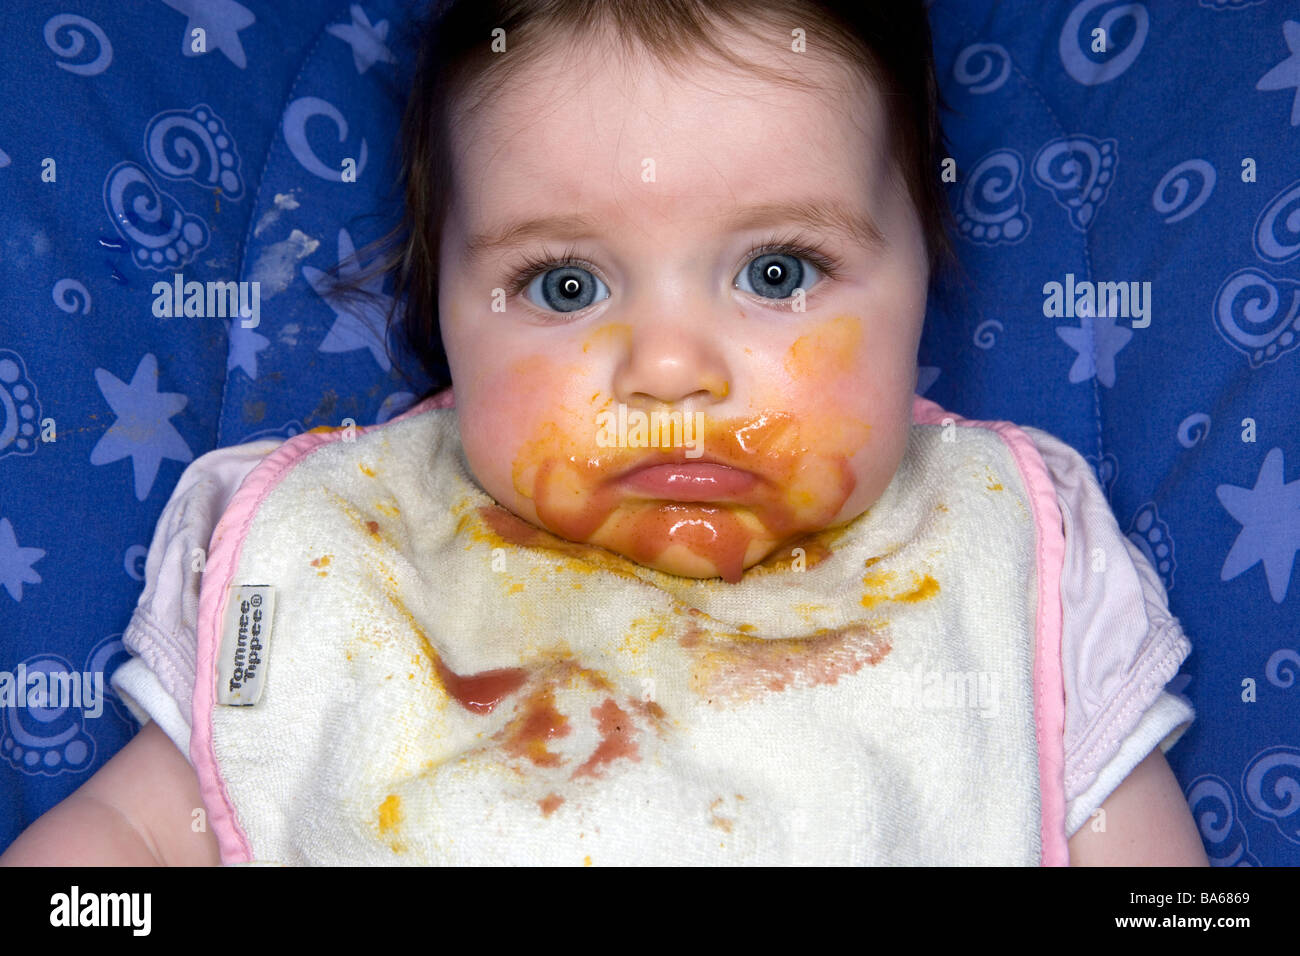 A messy looking baby girl eating food. - Stock Image